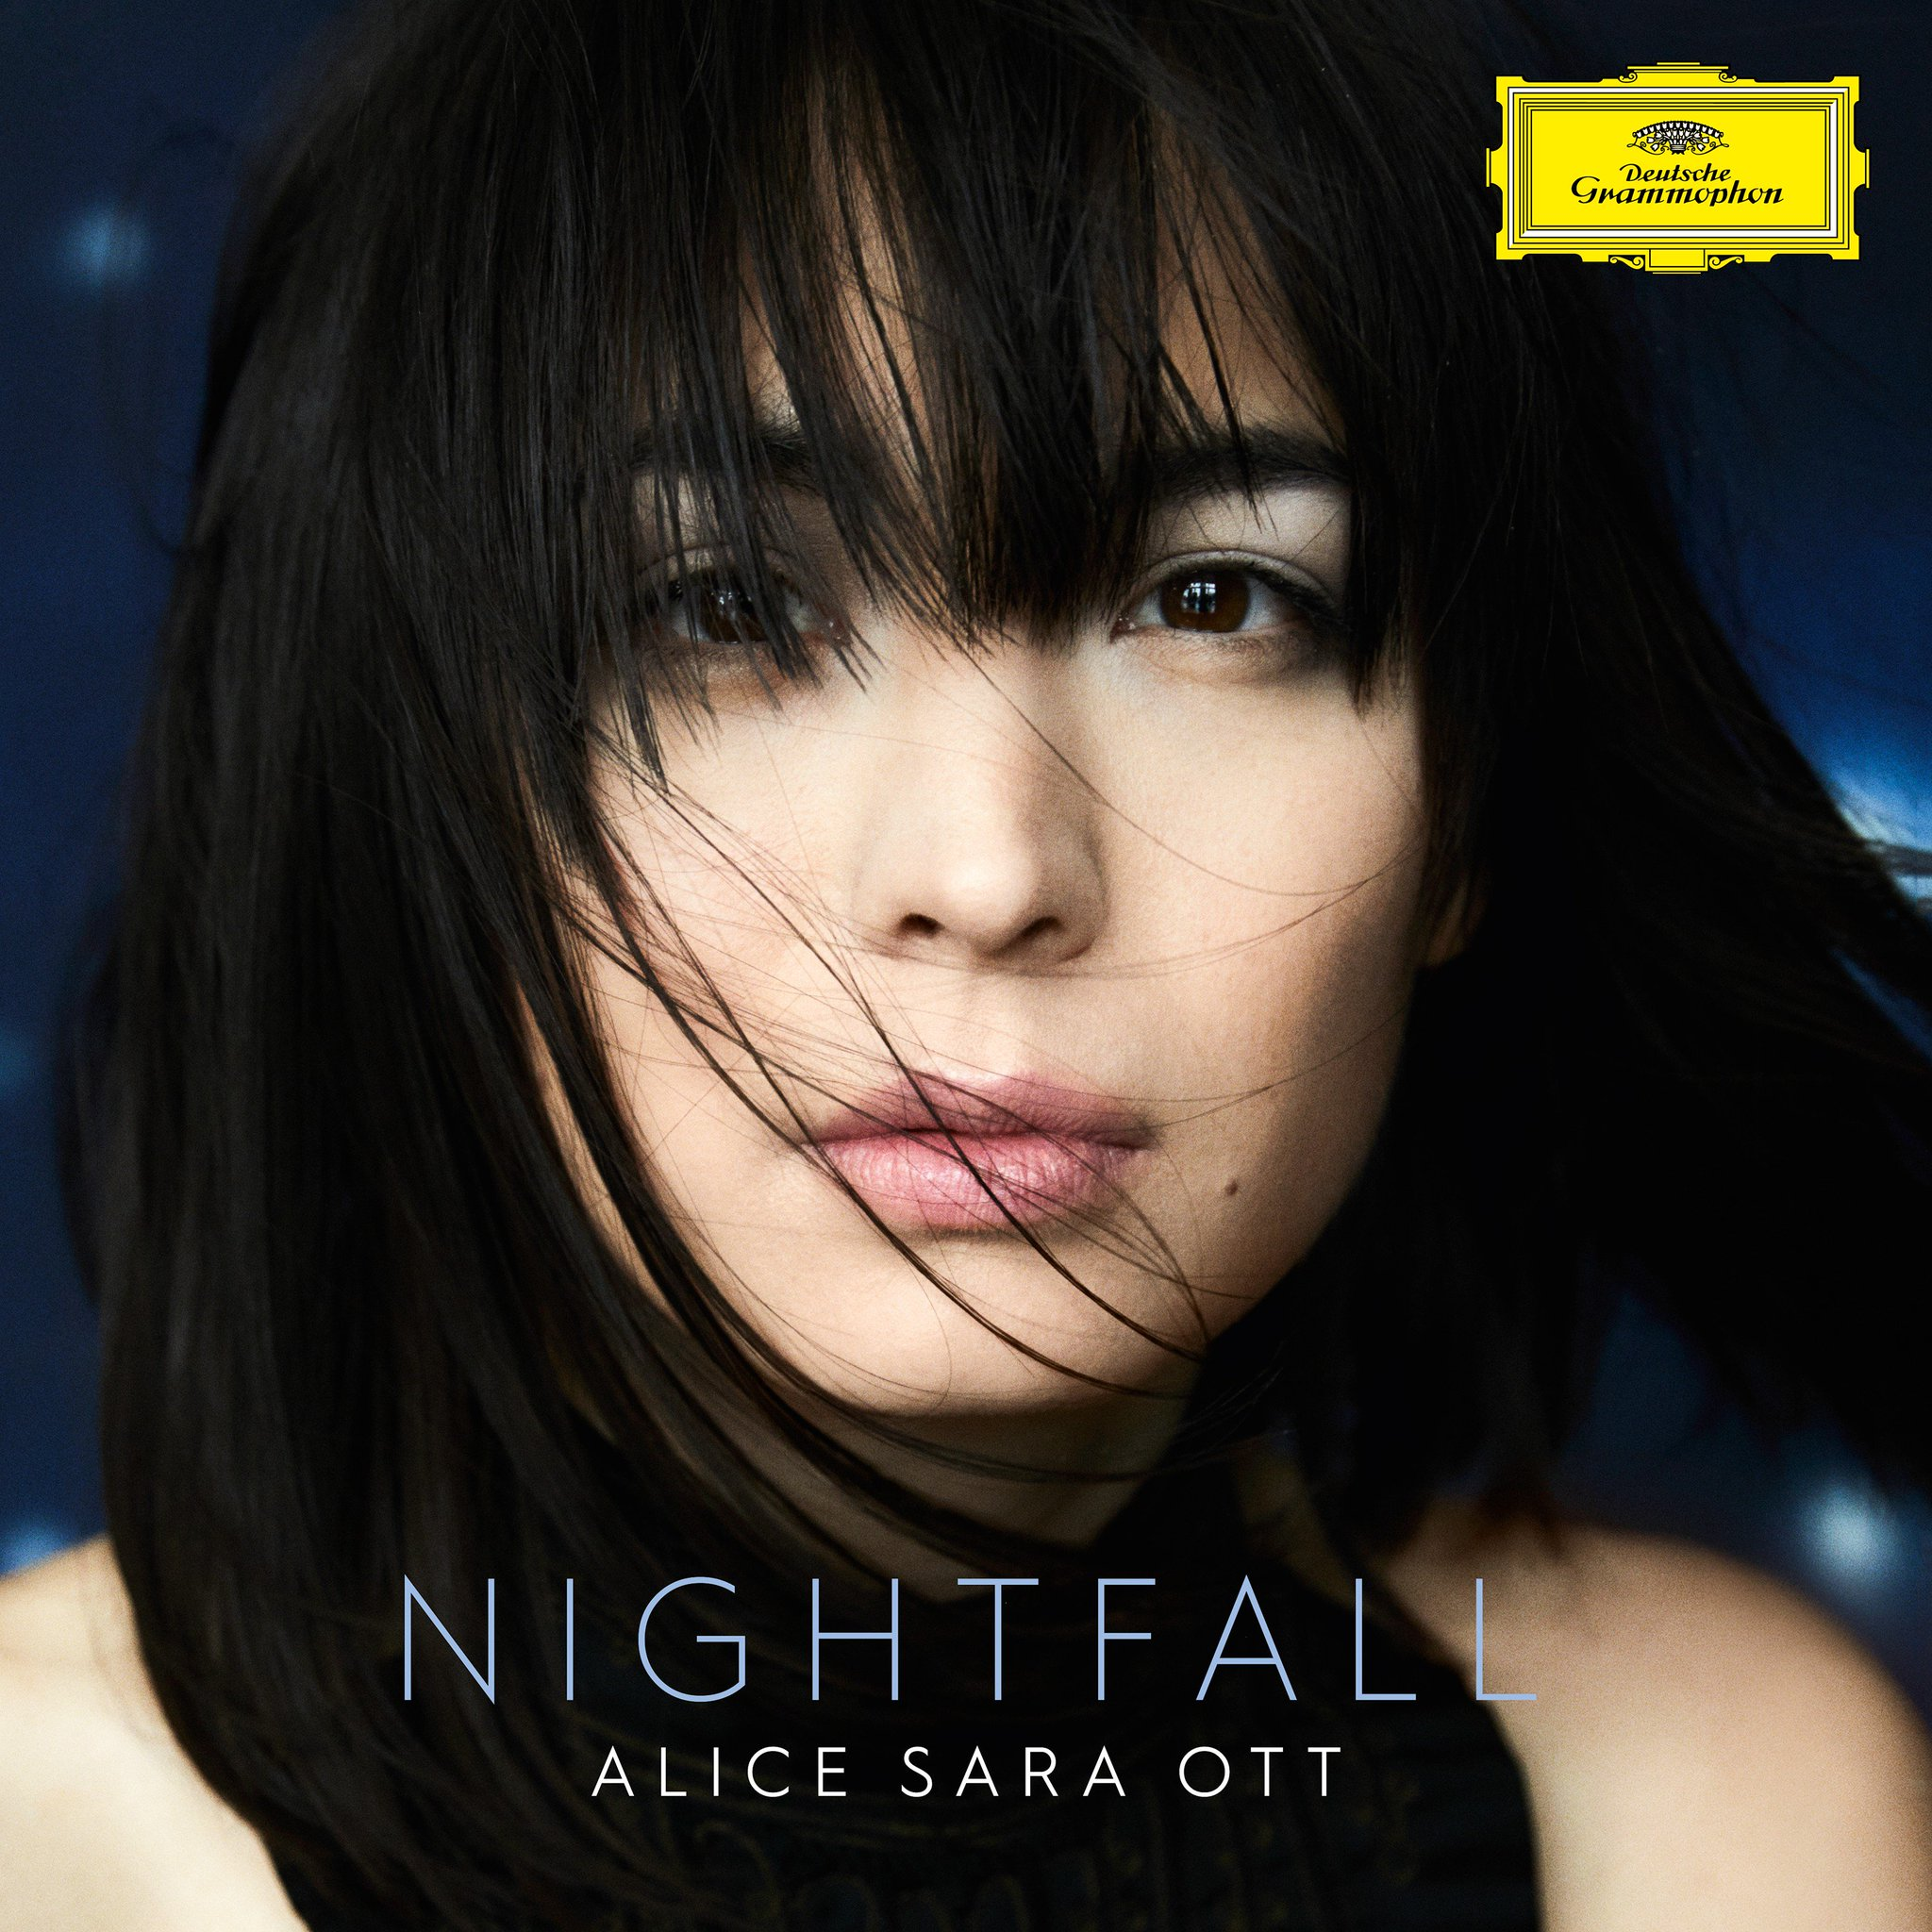 Reloaded twaddle – RT @DGclassics: @AliceSaraOtt presents 'Nightfall', where she explores the trans...